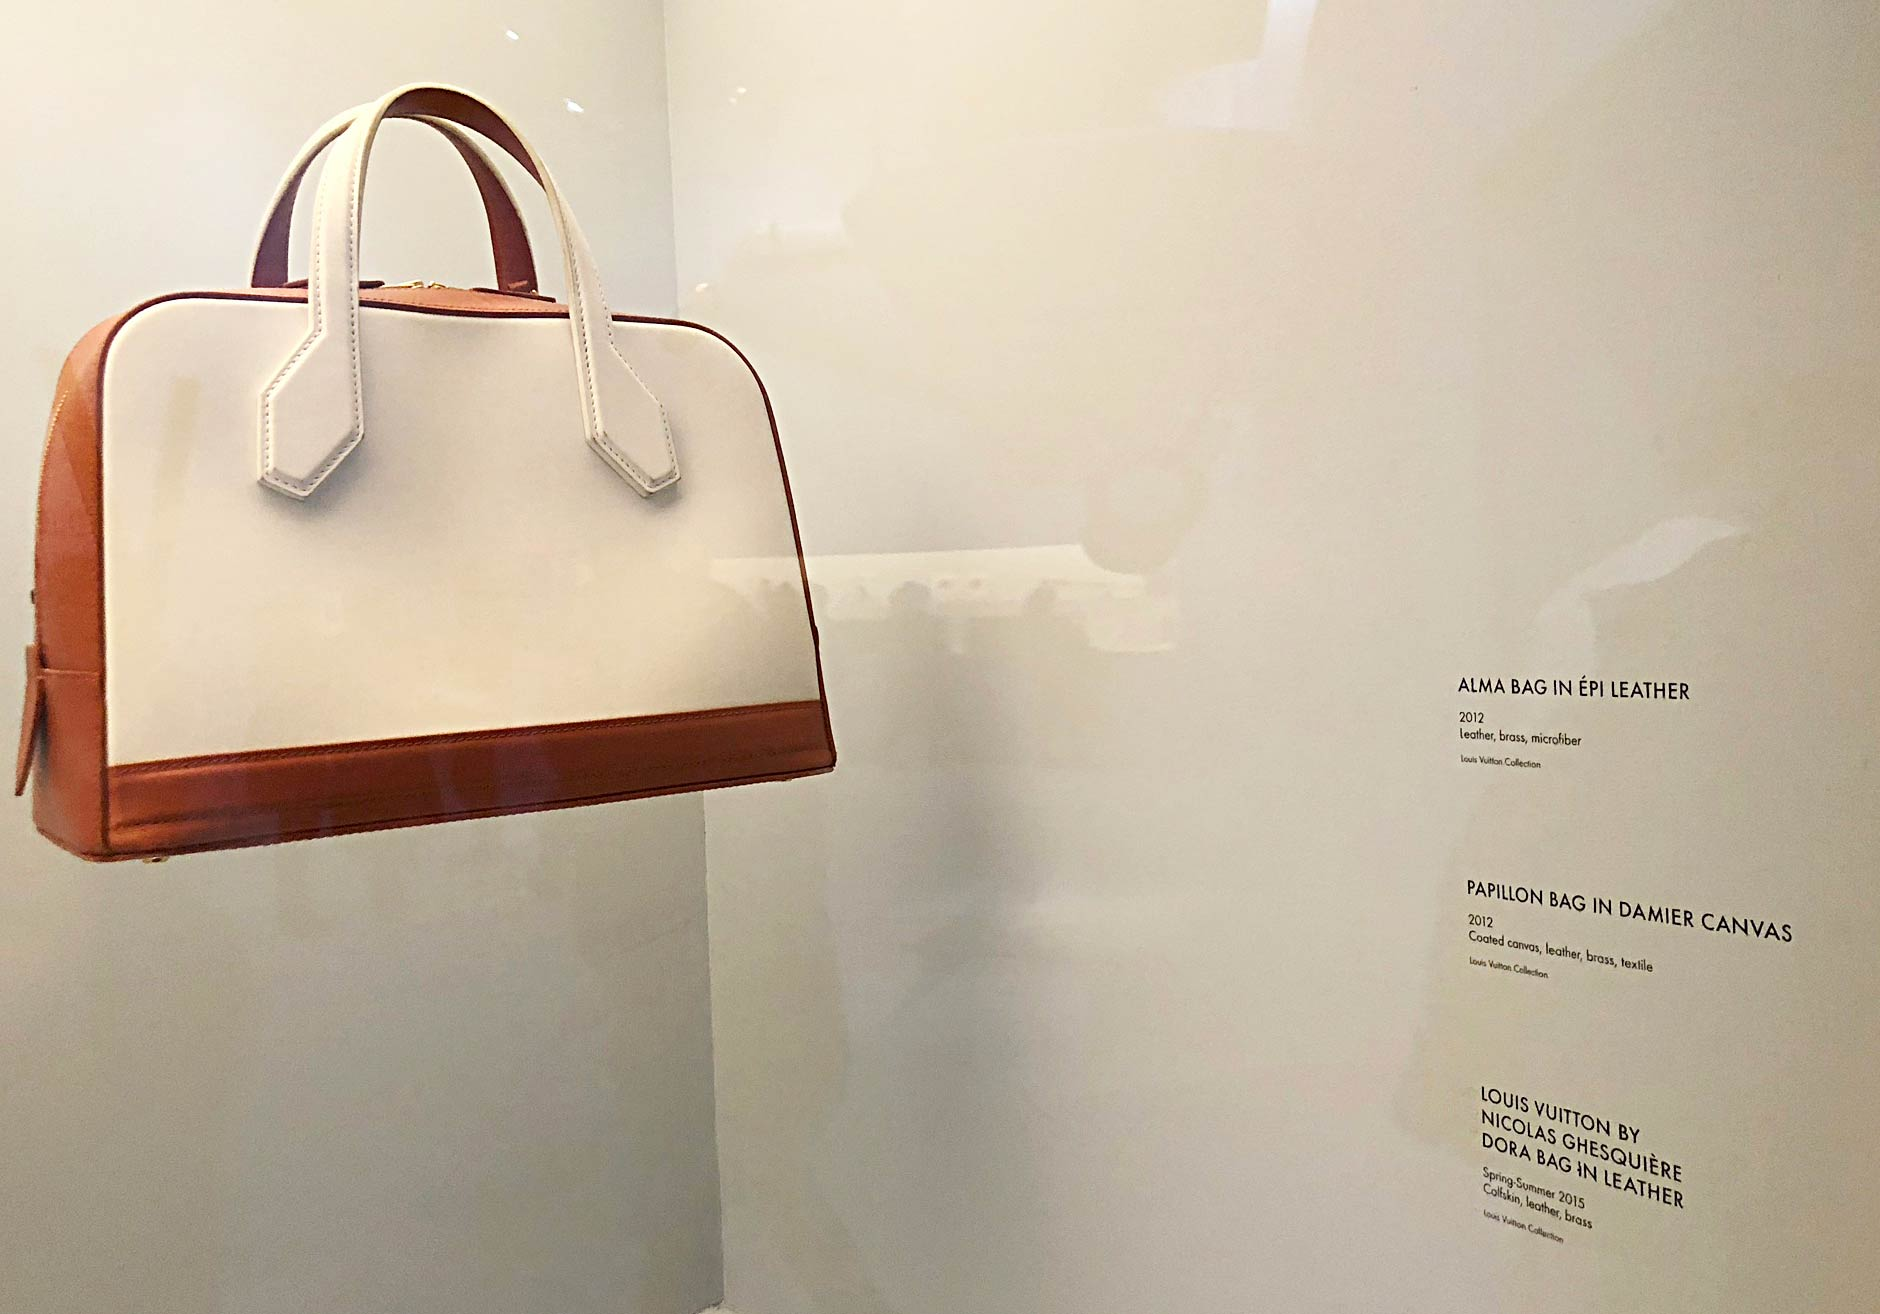 Louis Vuitton - Volez, Voguez, Voyagez exhibit, New York, NY. A leather, brass and microfiber handbag with cream-colored leather and light-auburn bottom and sides. Custom dry transfers are applied to the wall and used as descriptions for the piece.